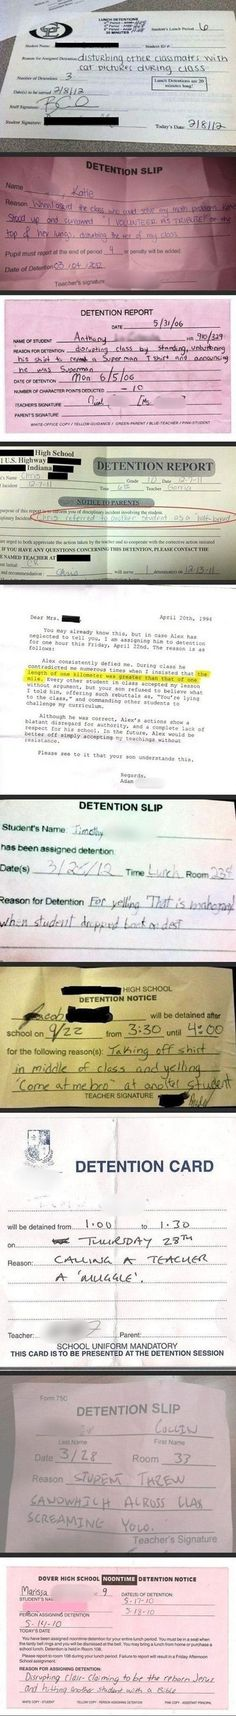 Amazing Reasons to Get Detention - I like the Hunger Games one the best. That or the one where the student corrected the teacher (after all, a mile IS longer than a kilometer) but got detention anyways.